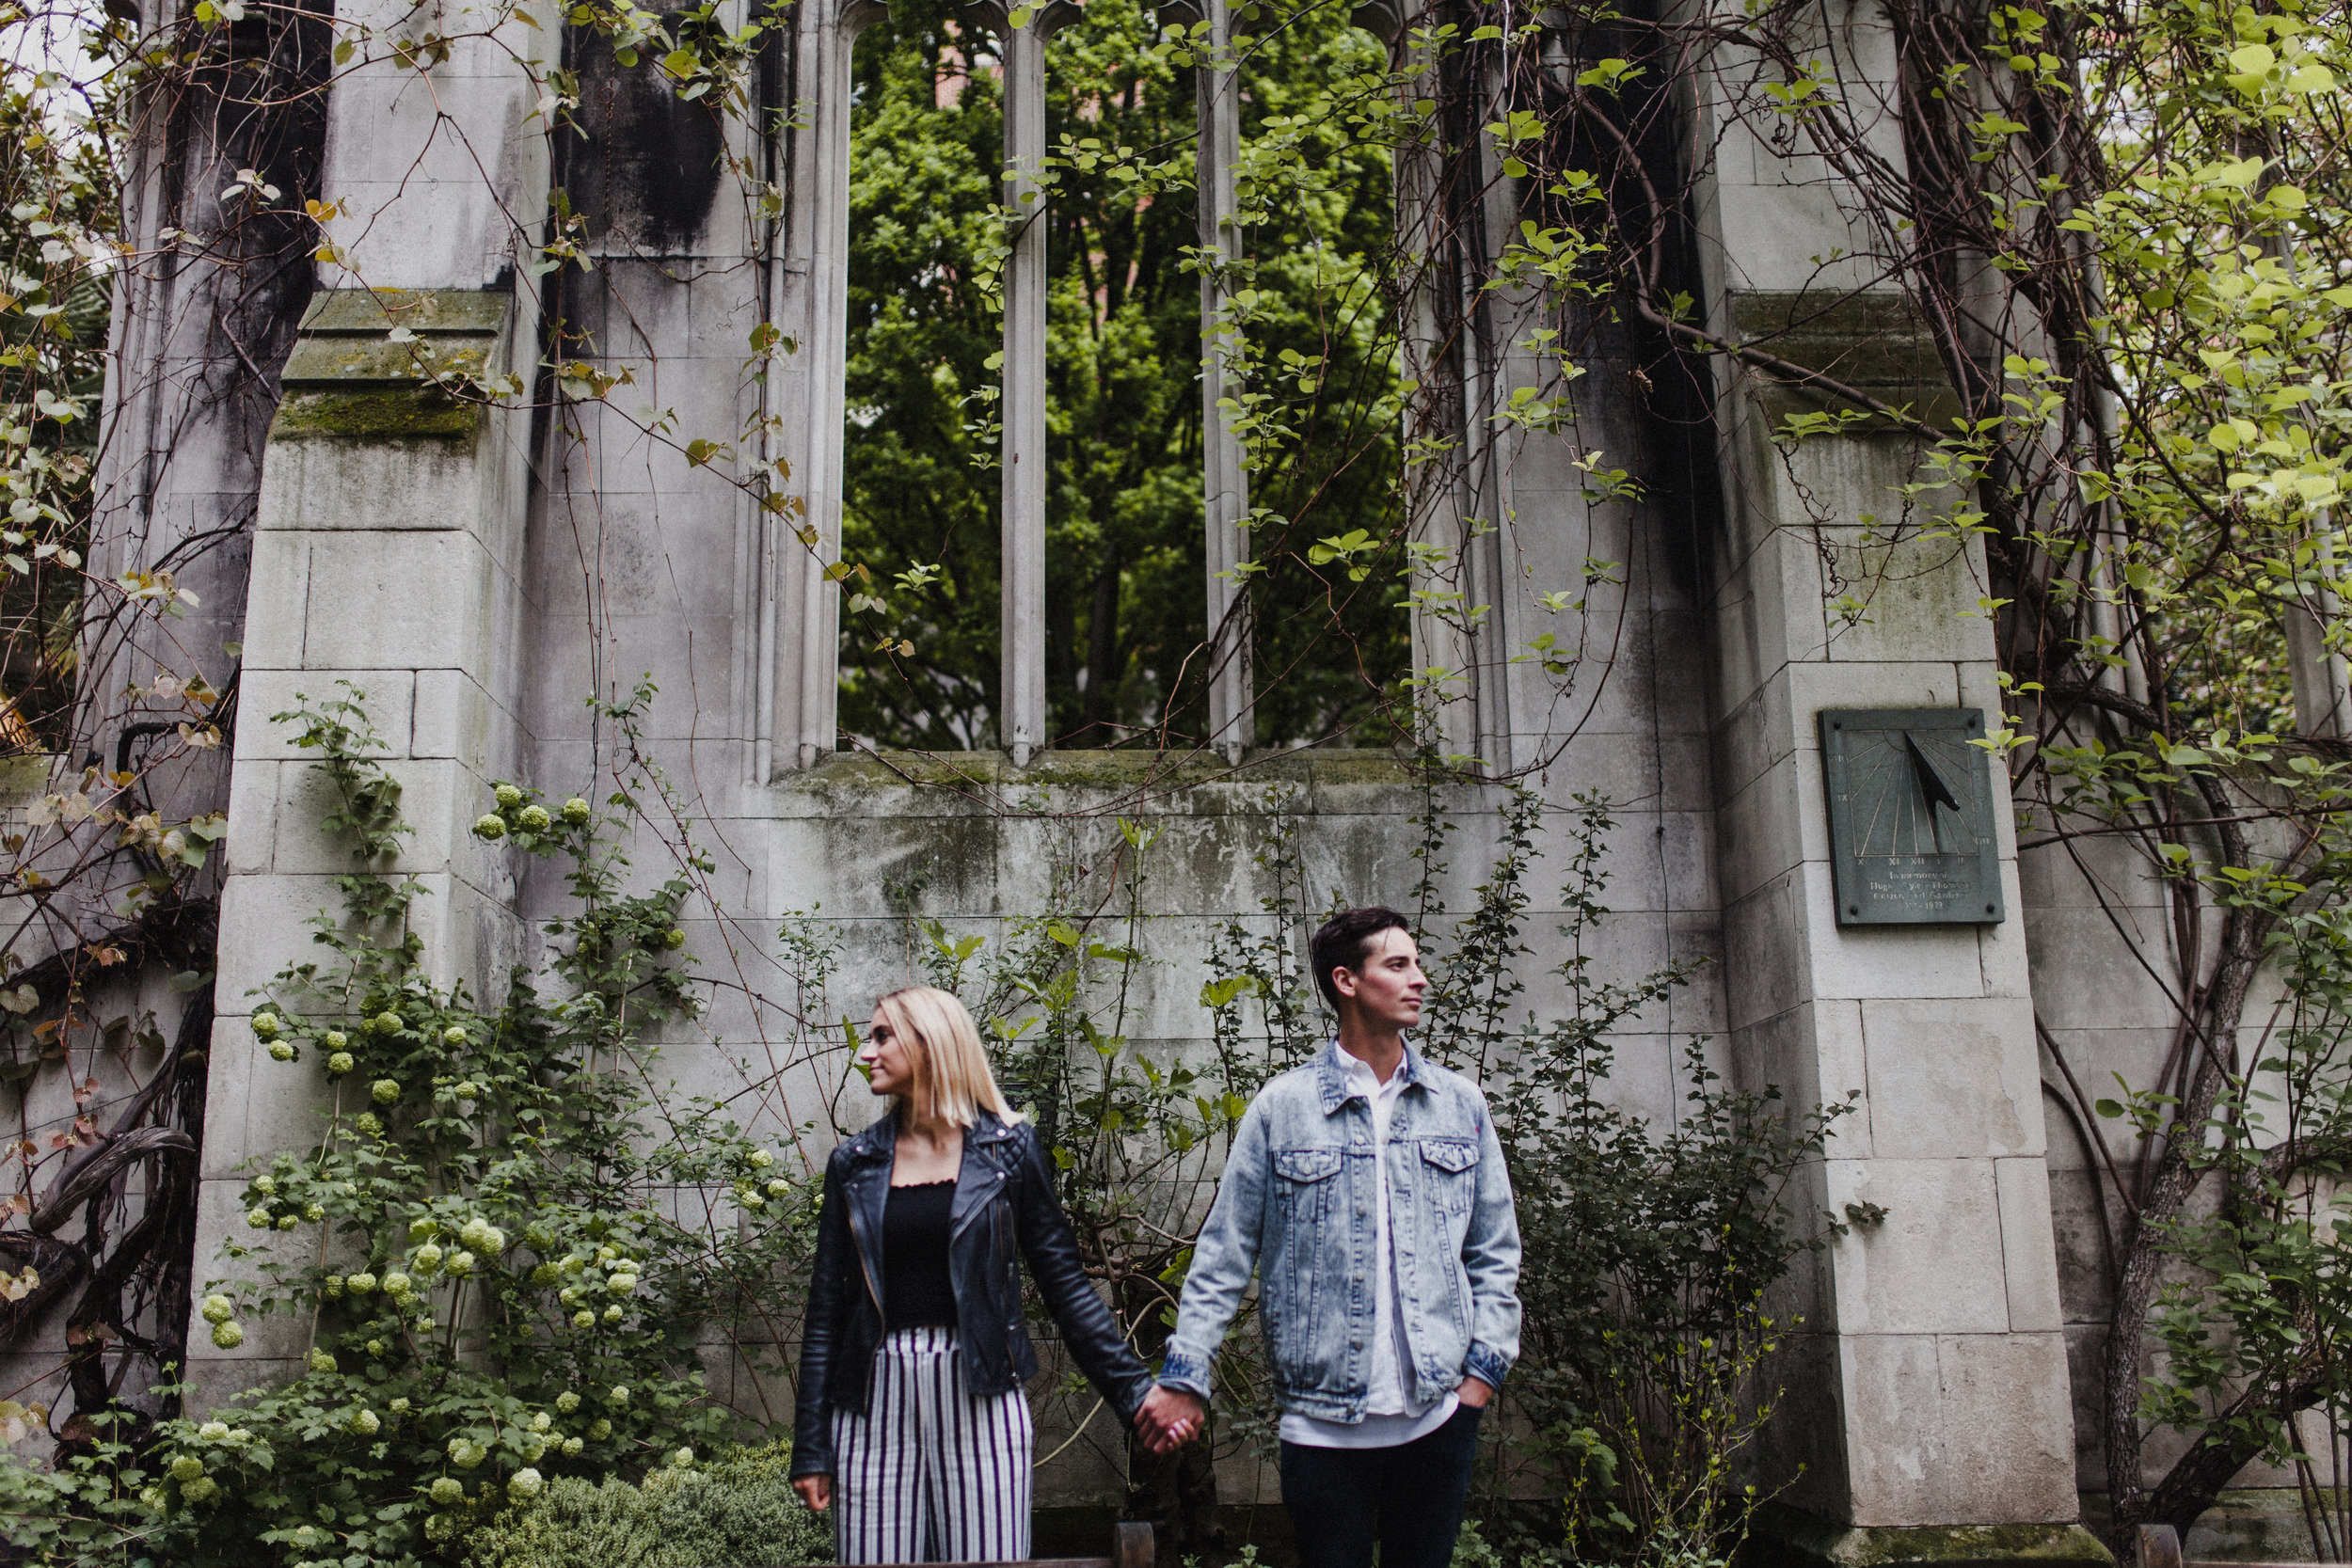 Couple pose for a portrait in the grounds of St Dunstan-in-the-East, a ruined church in London